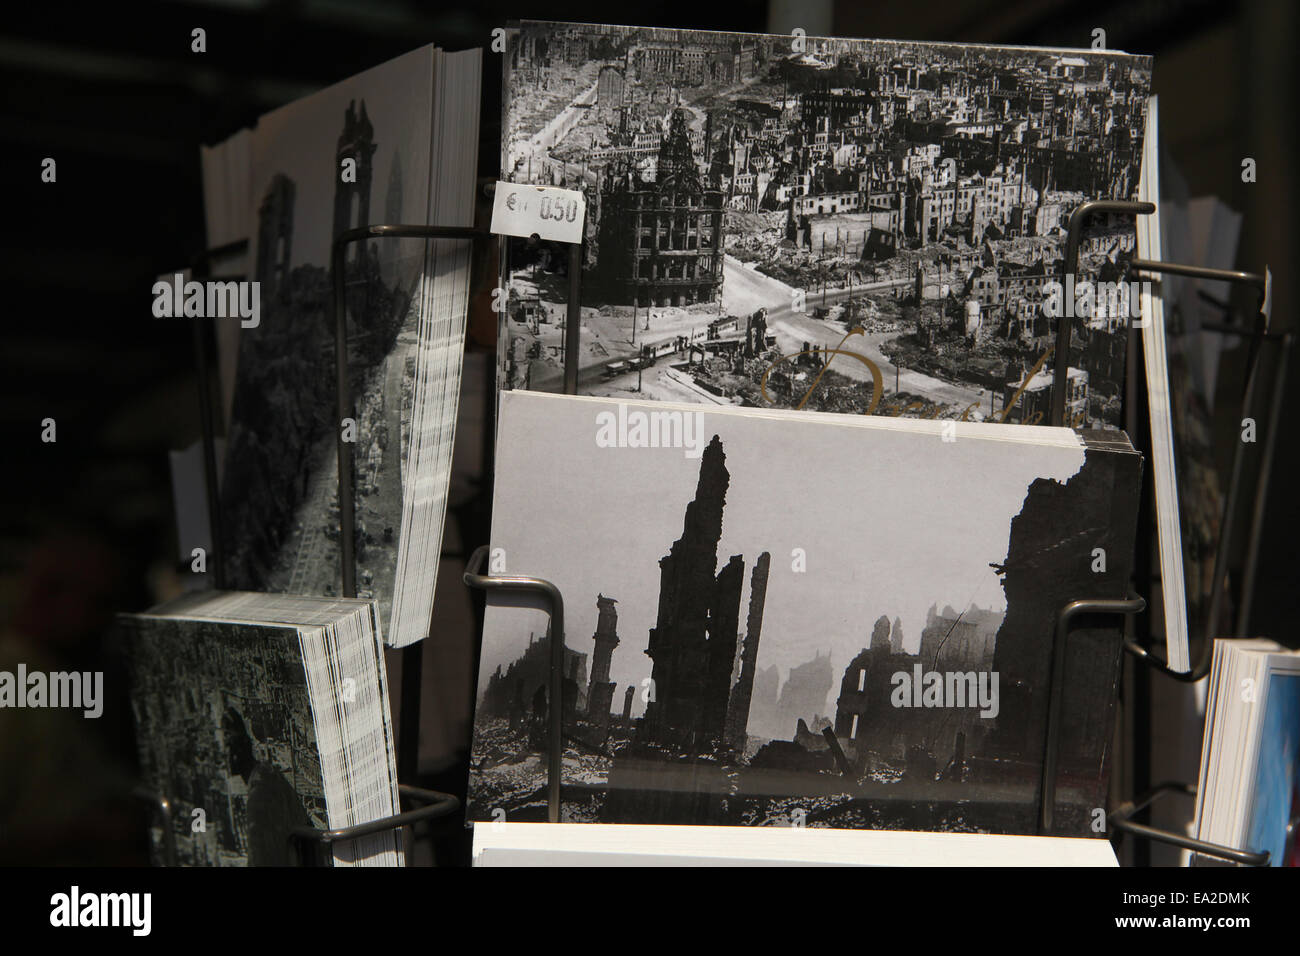 german air raid ww2 stockfotos german air raid ww2 bilder alamy. Black Bedroom Furniture Sets. Home Design Ideas